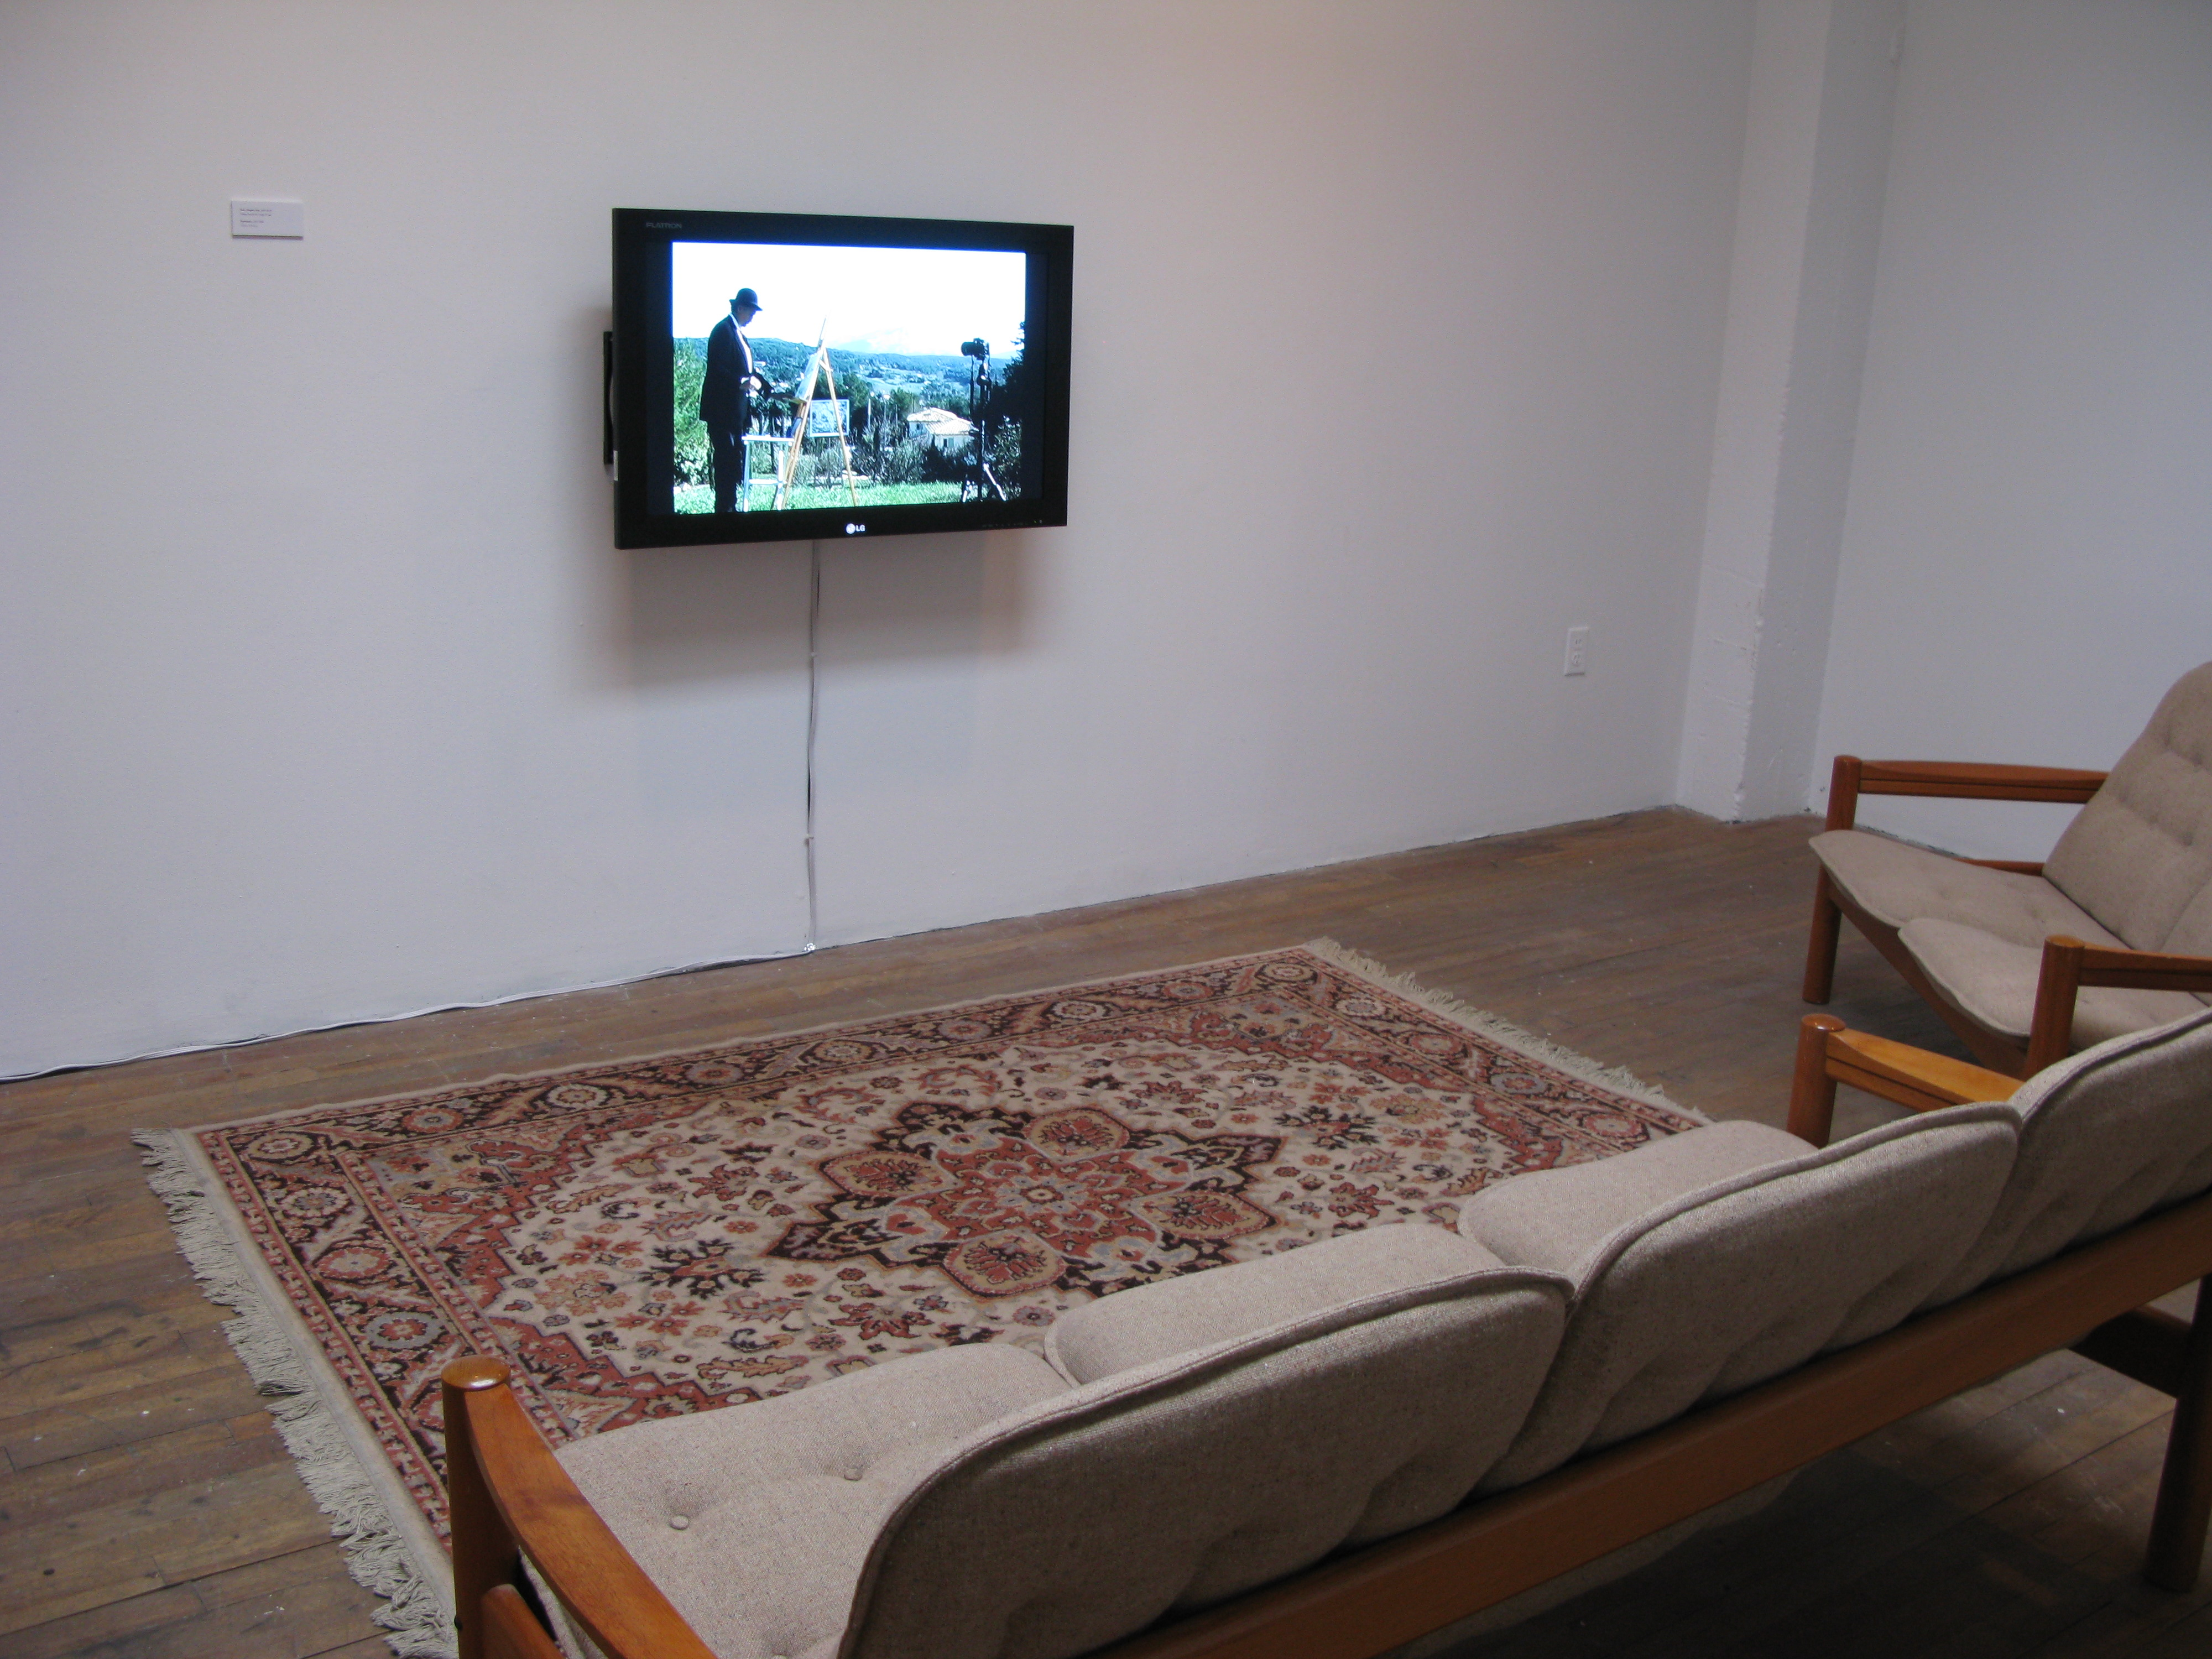 Cézanne's Eyes and Hands: Purloined (video installation), 2009 - Oboro Gallery